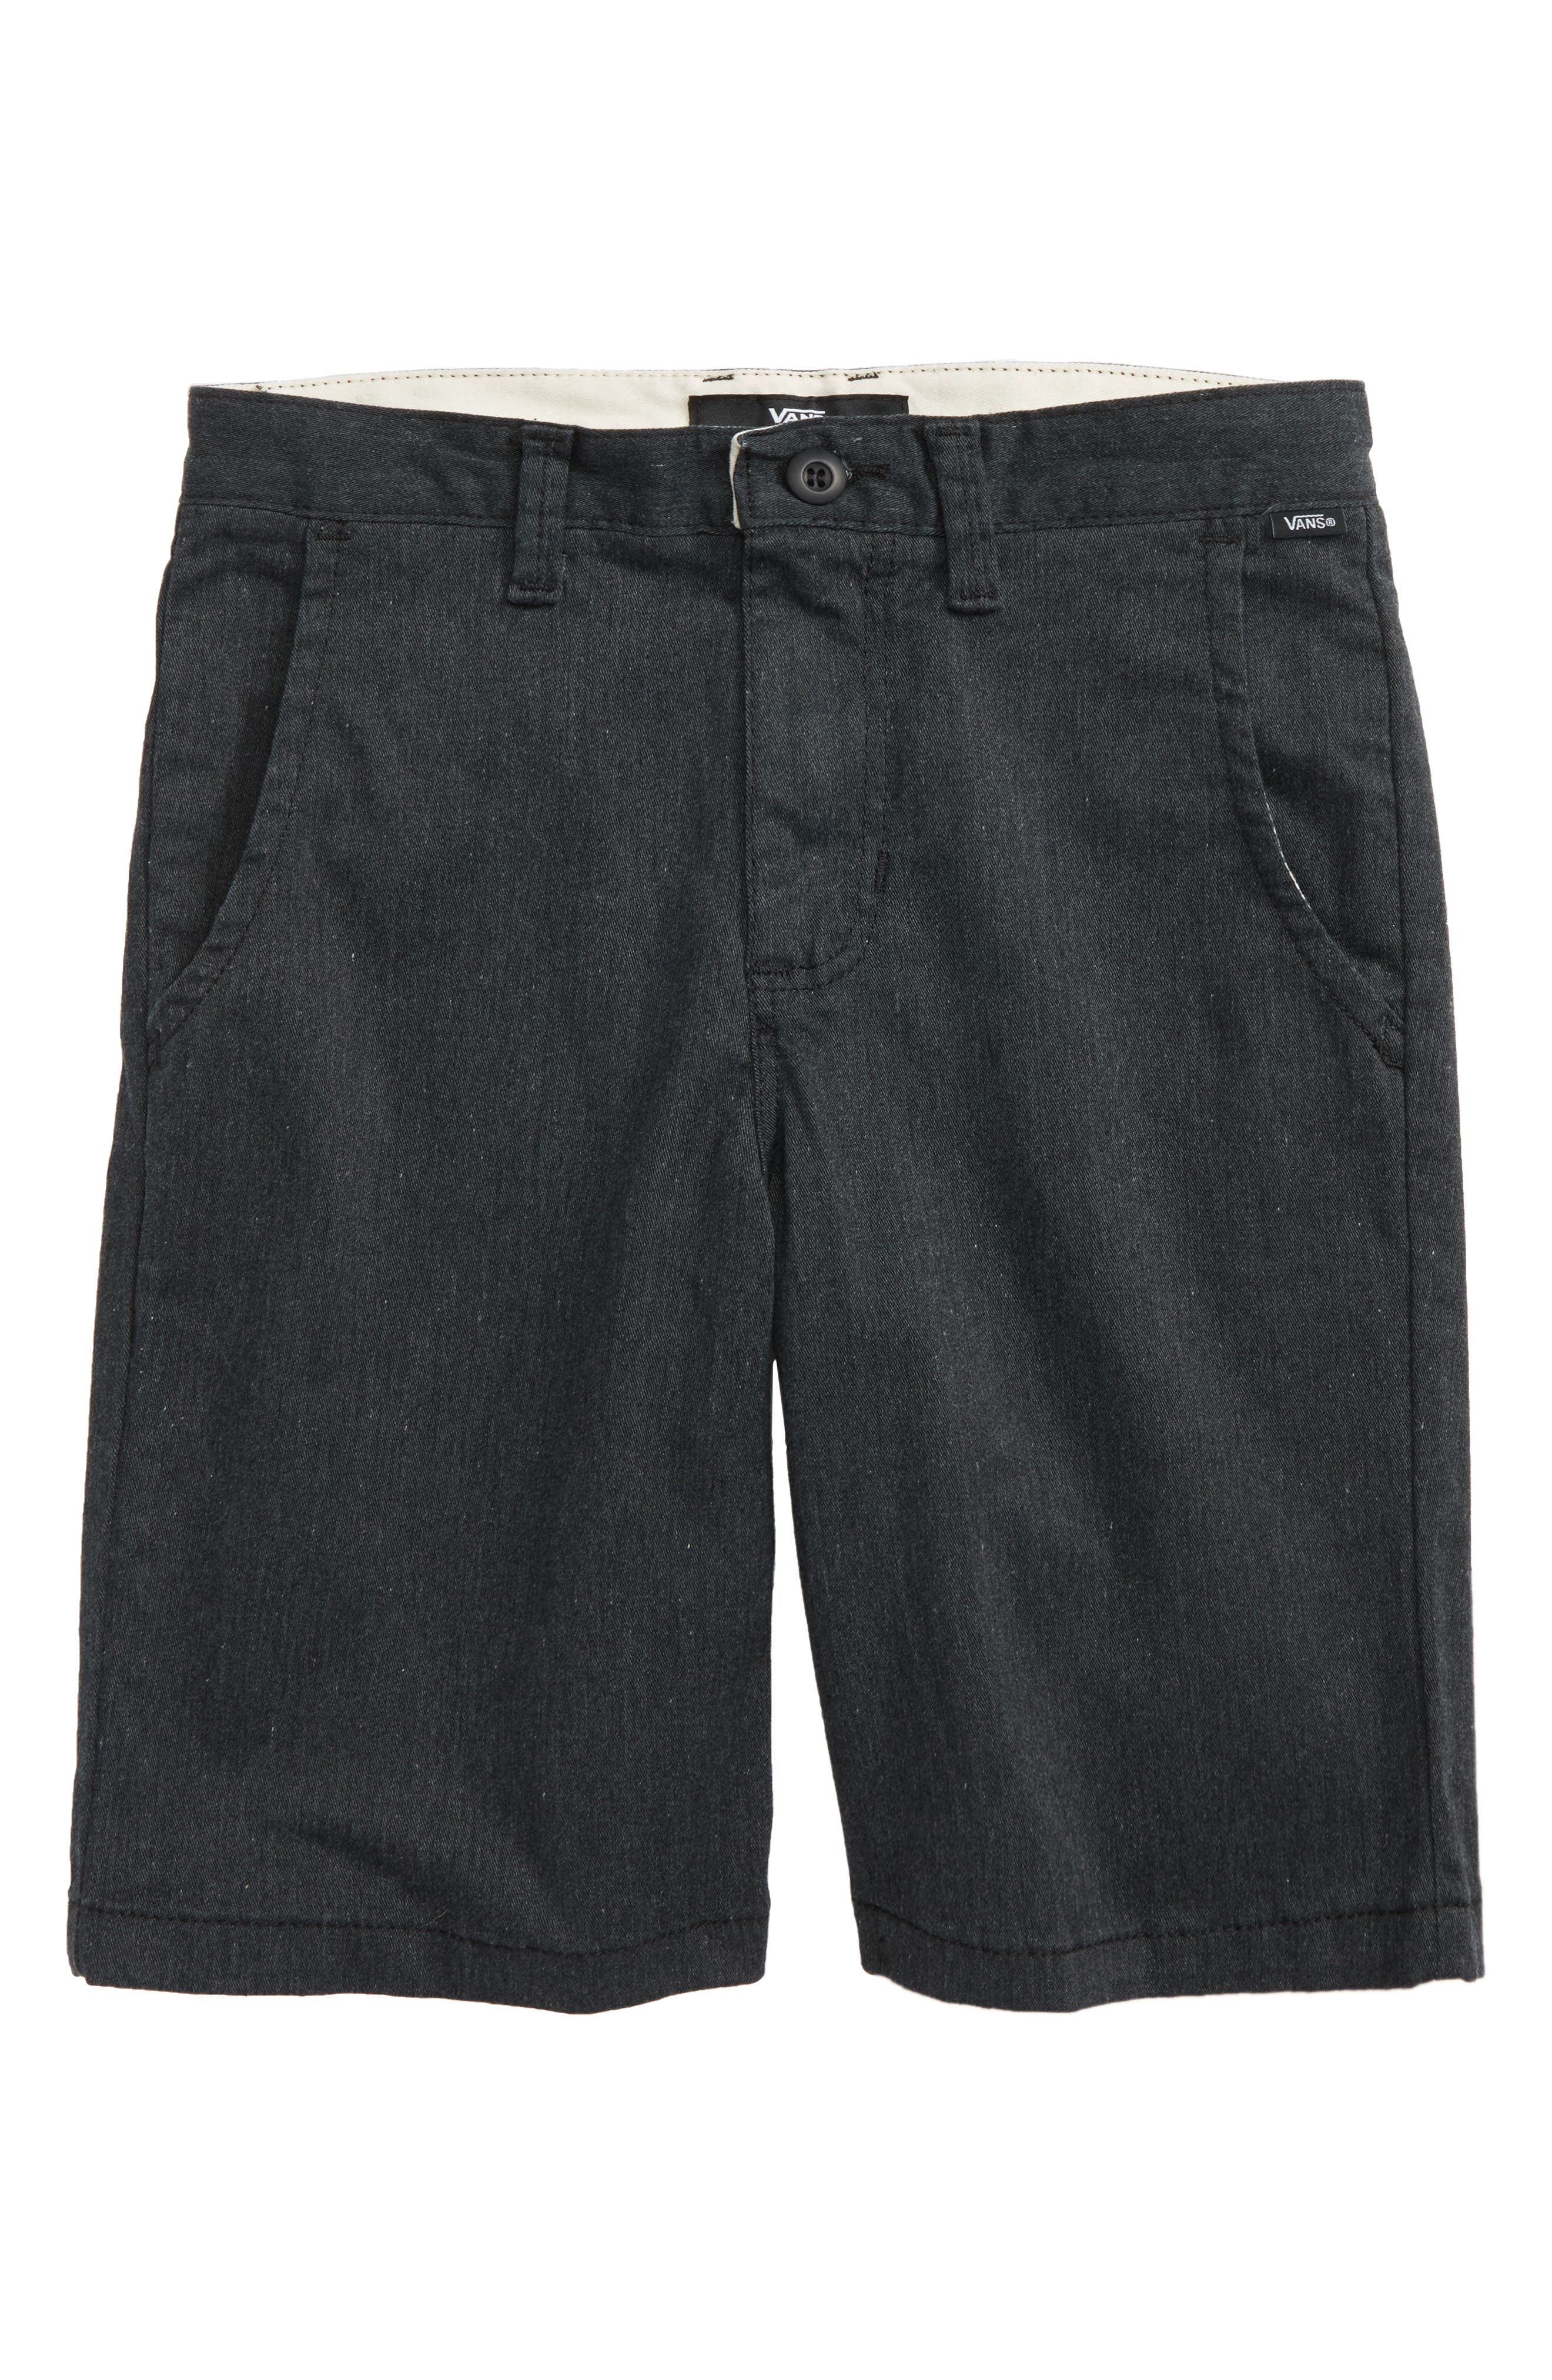 Authentic Stretch Shorts,                         Main,                         color, 001